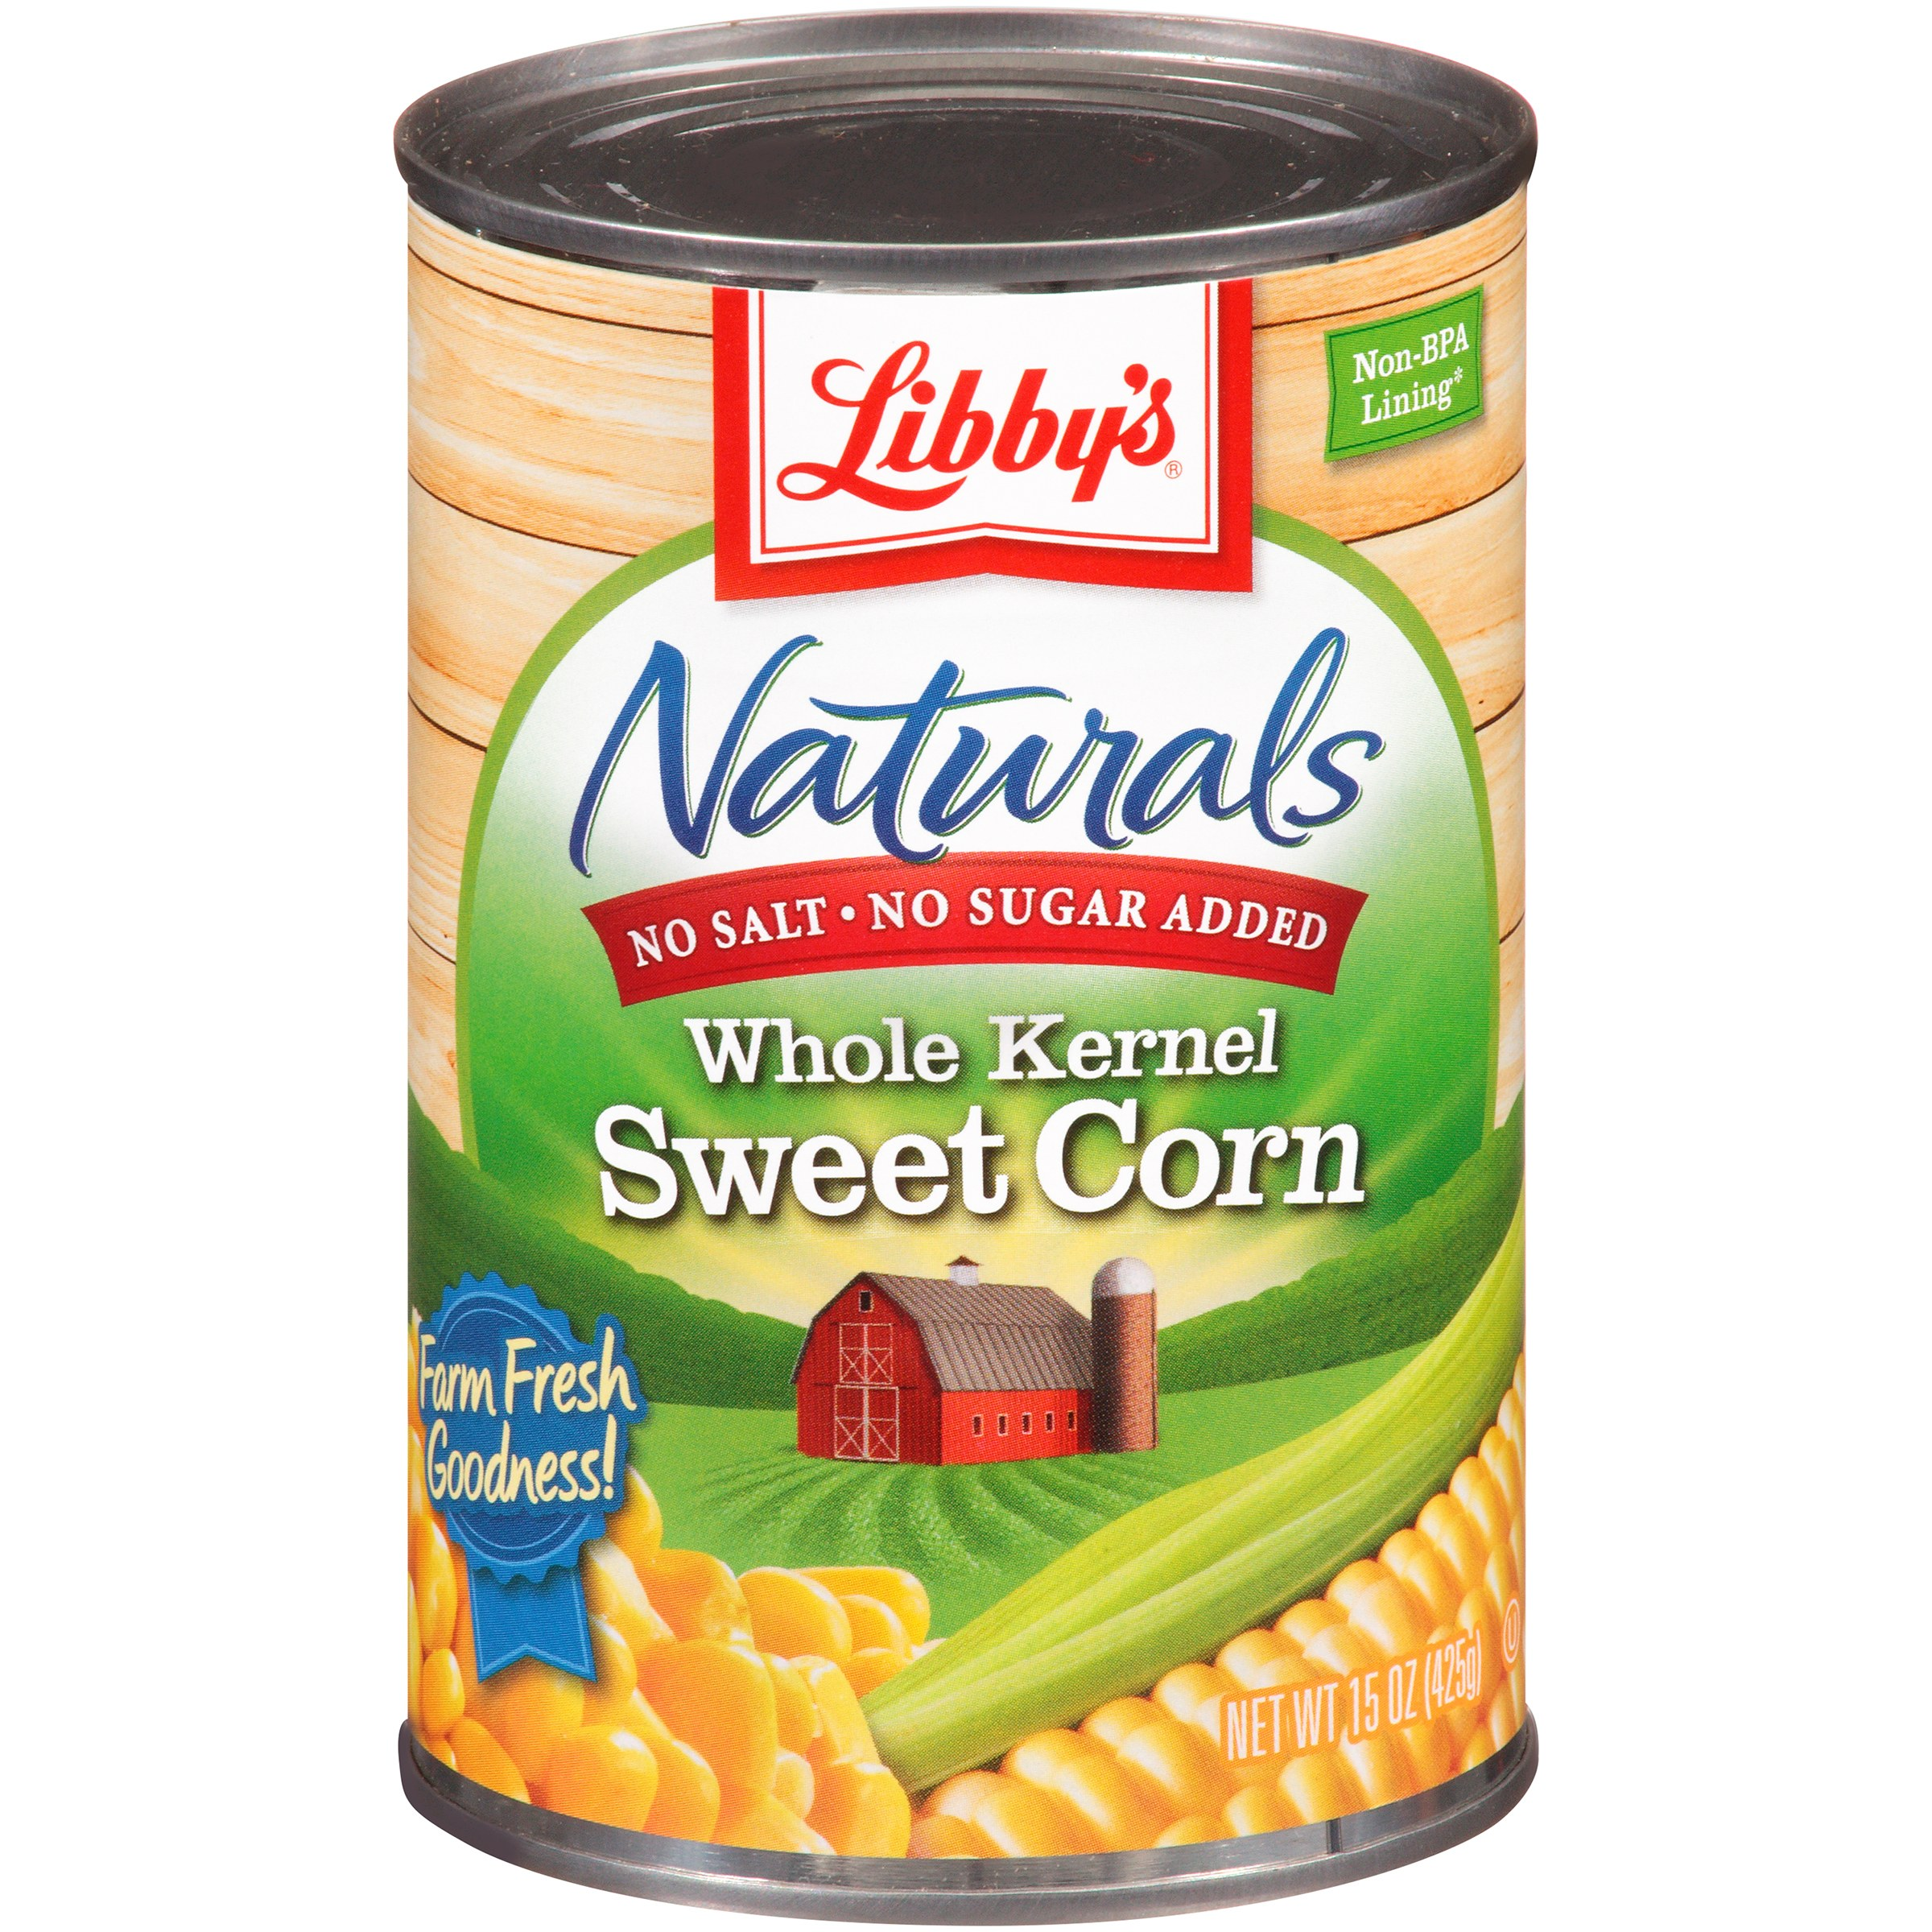 Libby's® Naturals No Salt & No Sugar Added Whole Kernel Sweet Corn 15 oz. Can